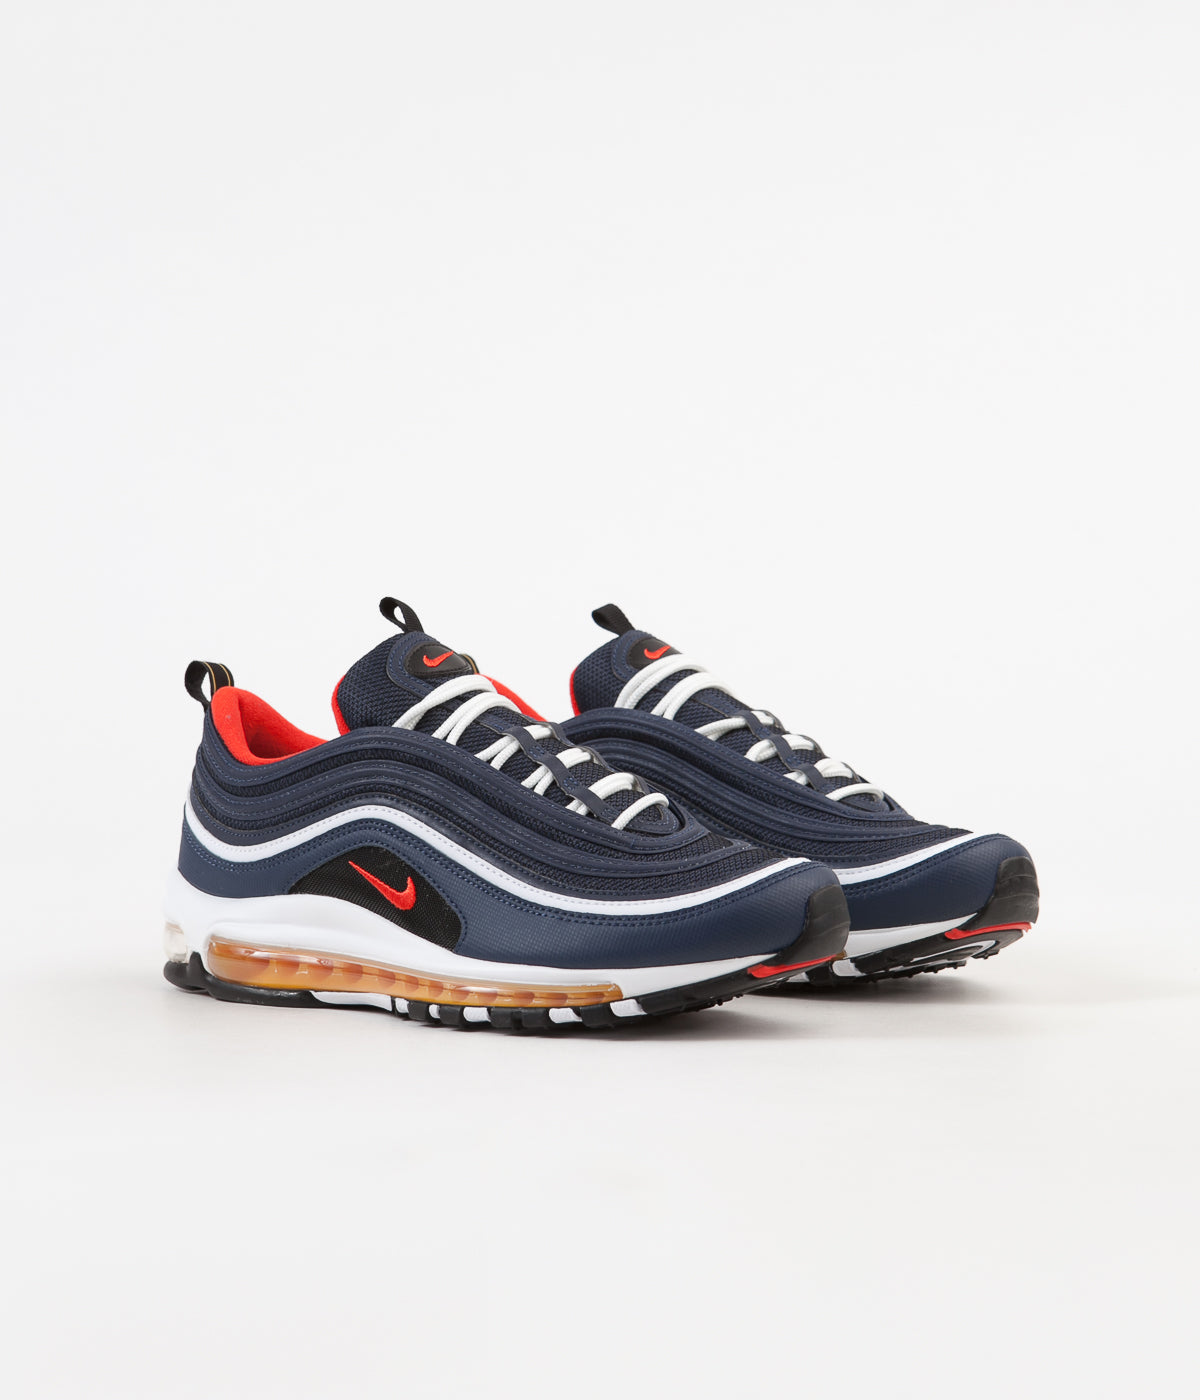 Nike Air Max 97 Shoes Midnight Navy Habanero Red Black